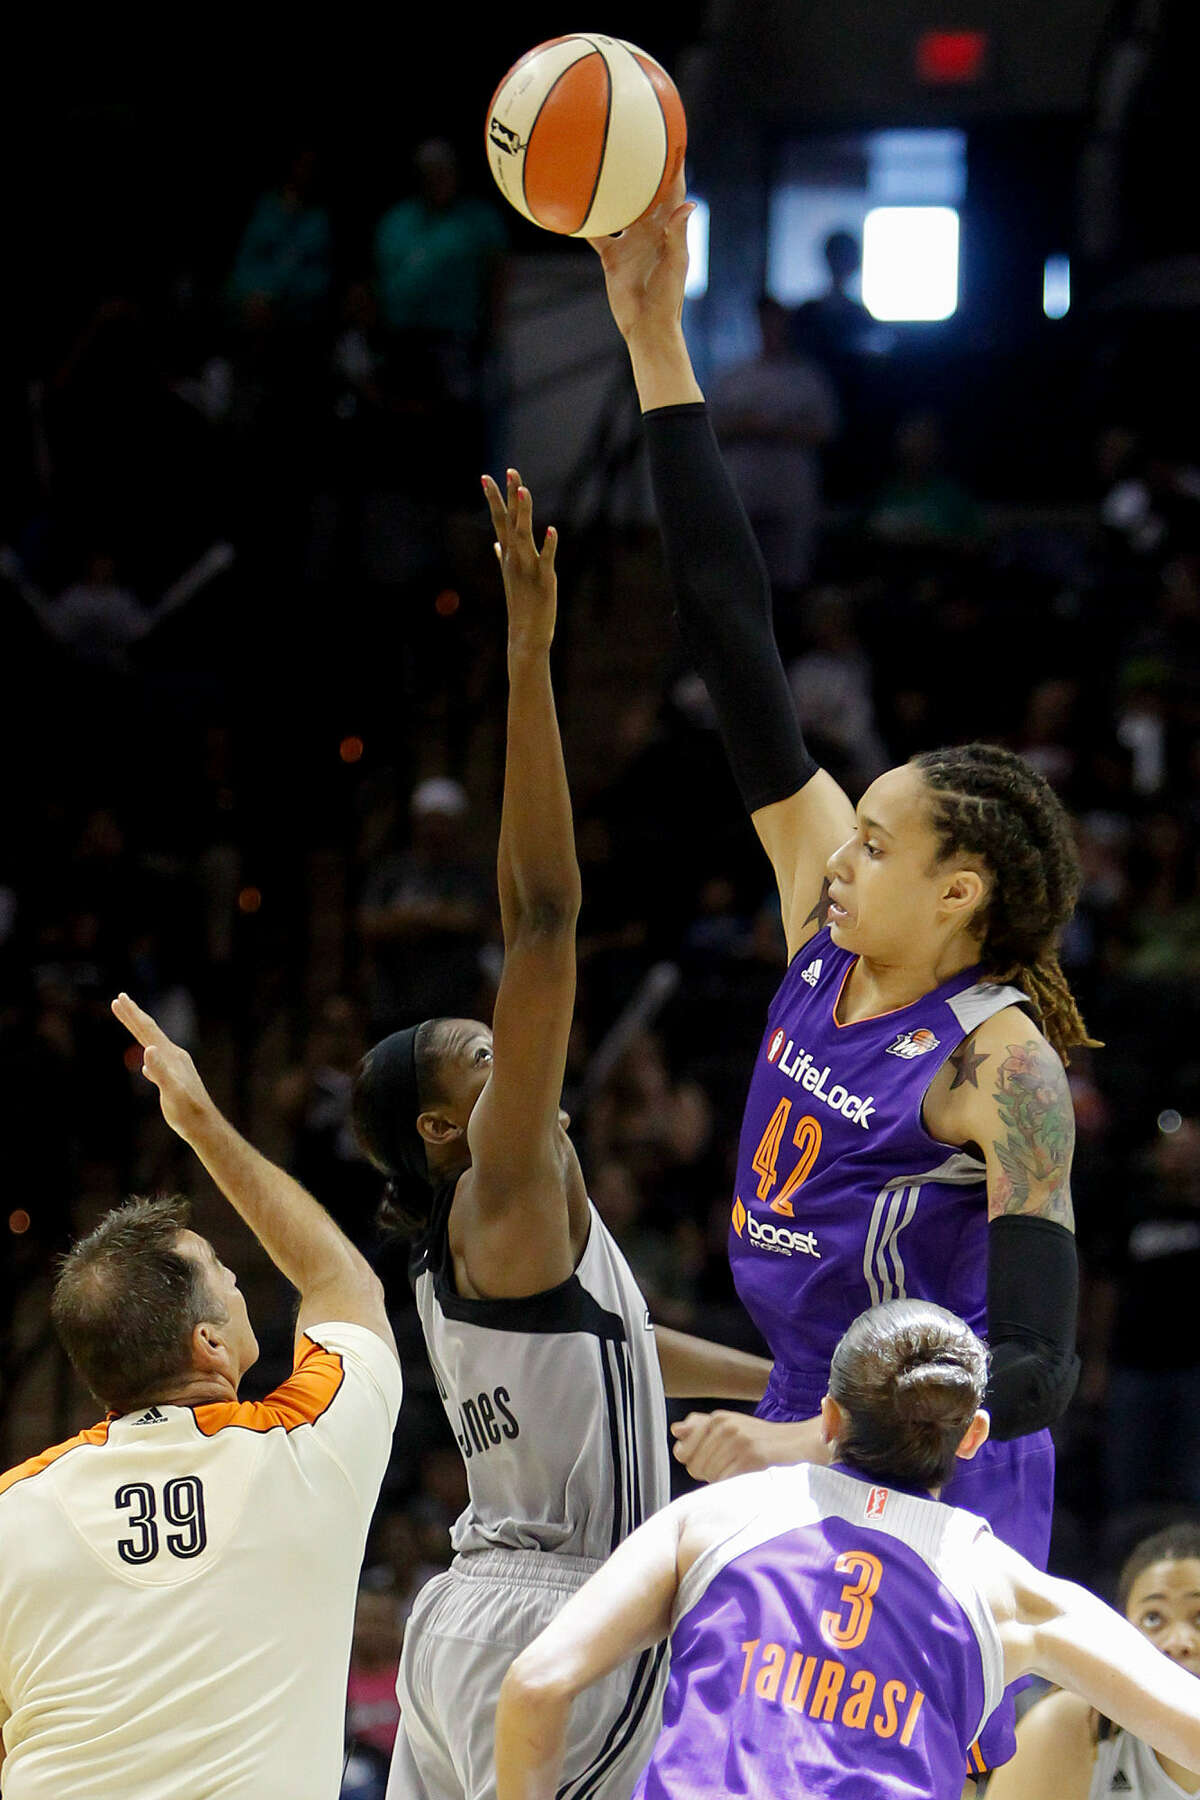 Phoenix center Brittney Griner controls the opening tip against the Silver Stars' DeLisha Milton-Jones. The ex-Baylor superstar had 26 points, seven rebounds and five blocks in her first WNBA game in San Antonio.